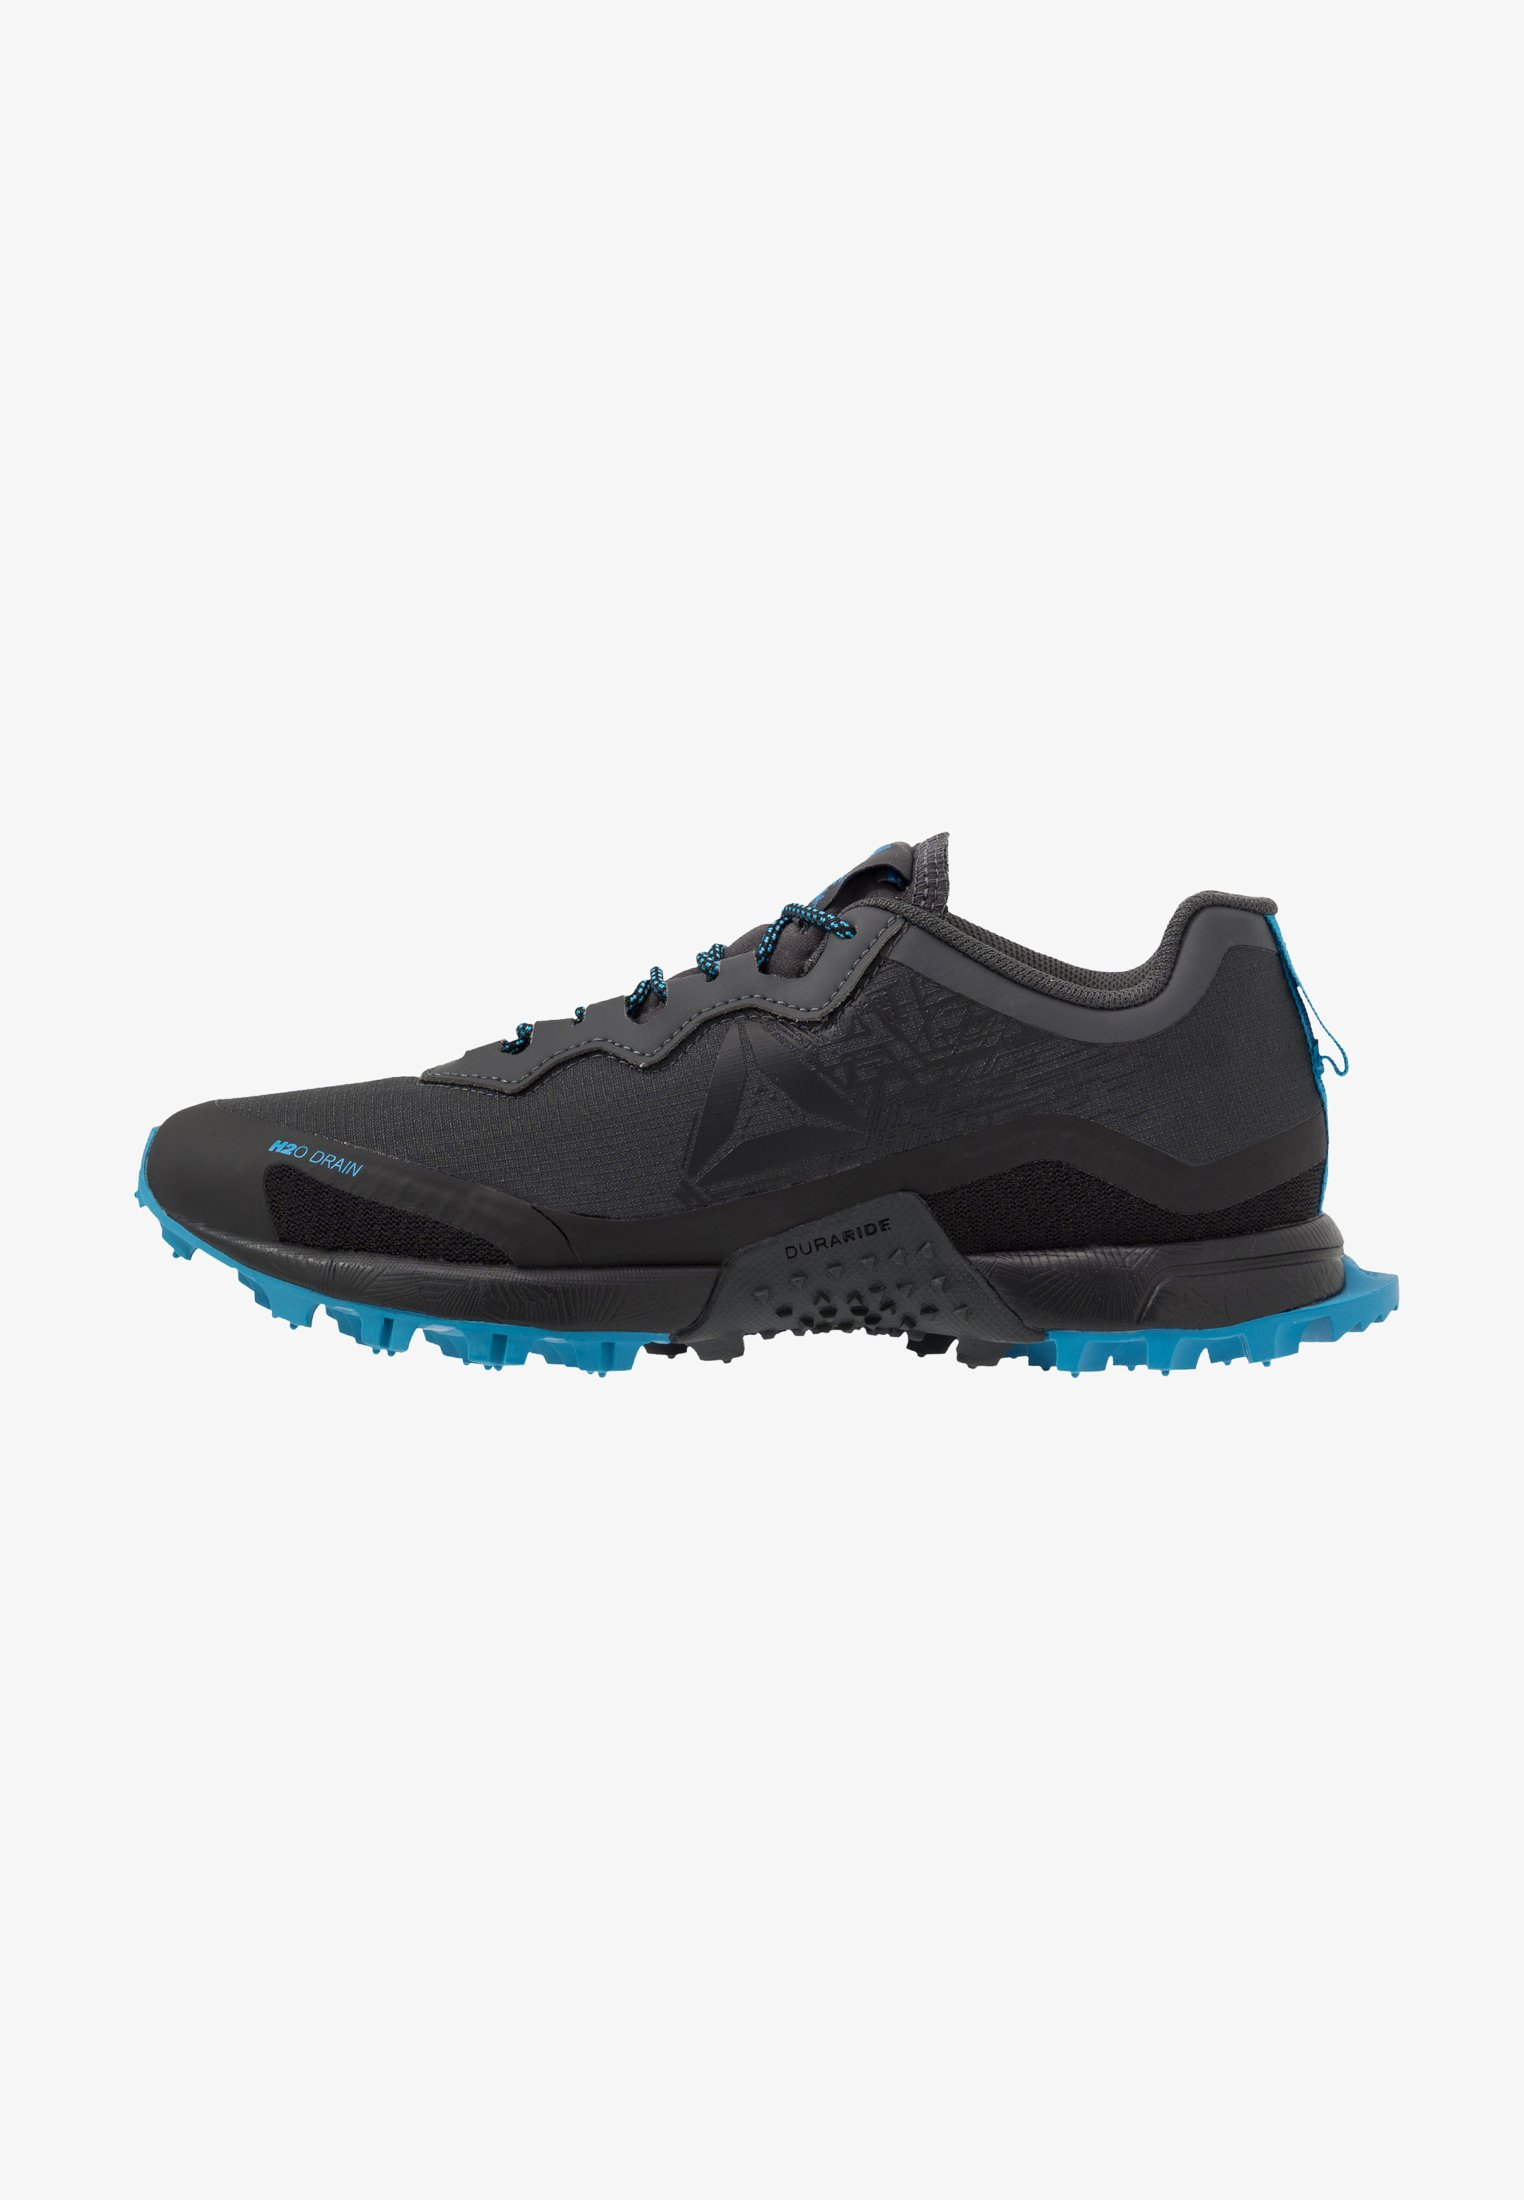 popular Discreto fin de semana  Reebok ALL TERRAIN CRAZE - Trail running shoes - cold grey/black/cyan/grey  - Zalando.de